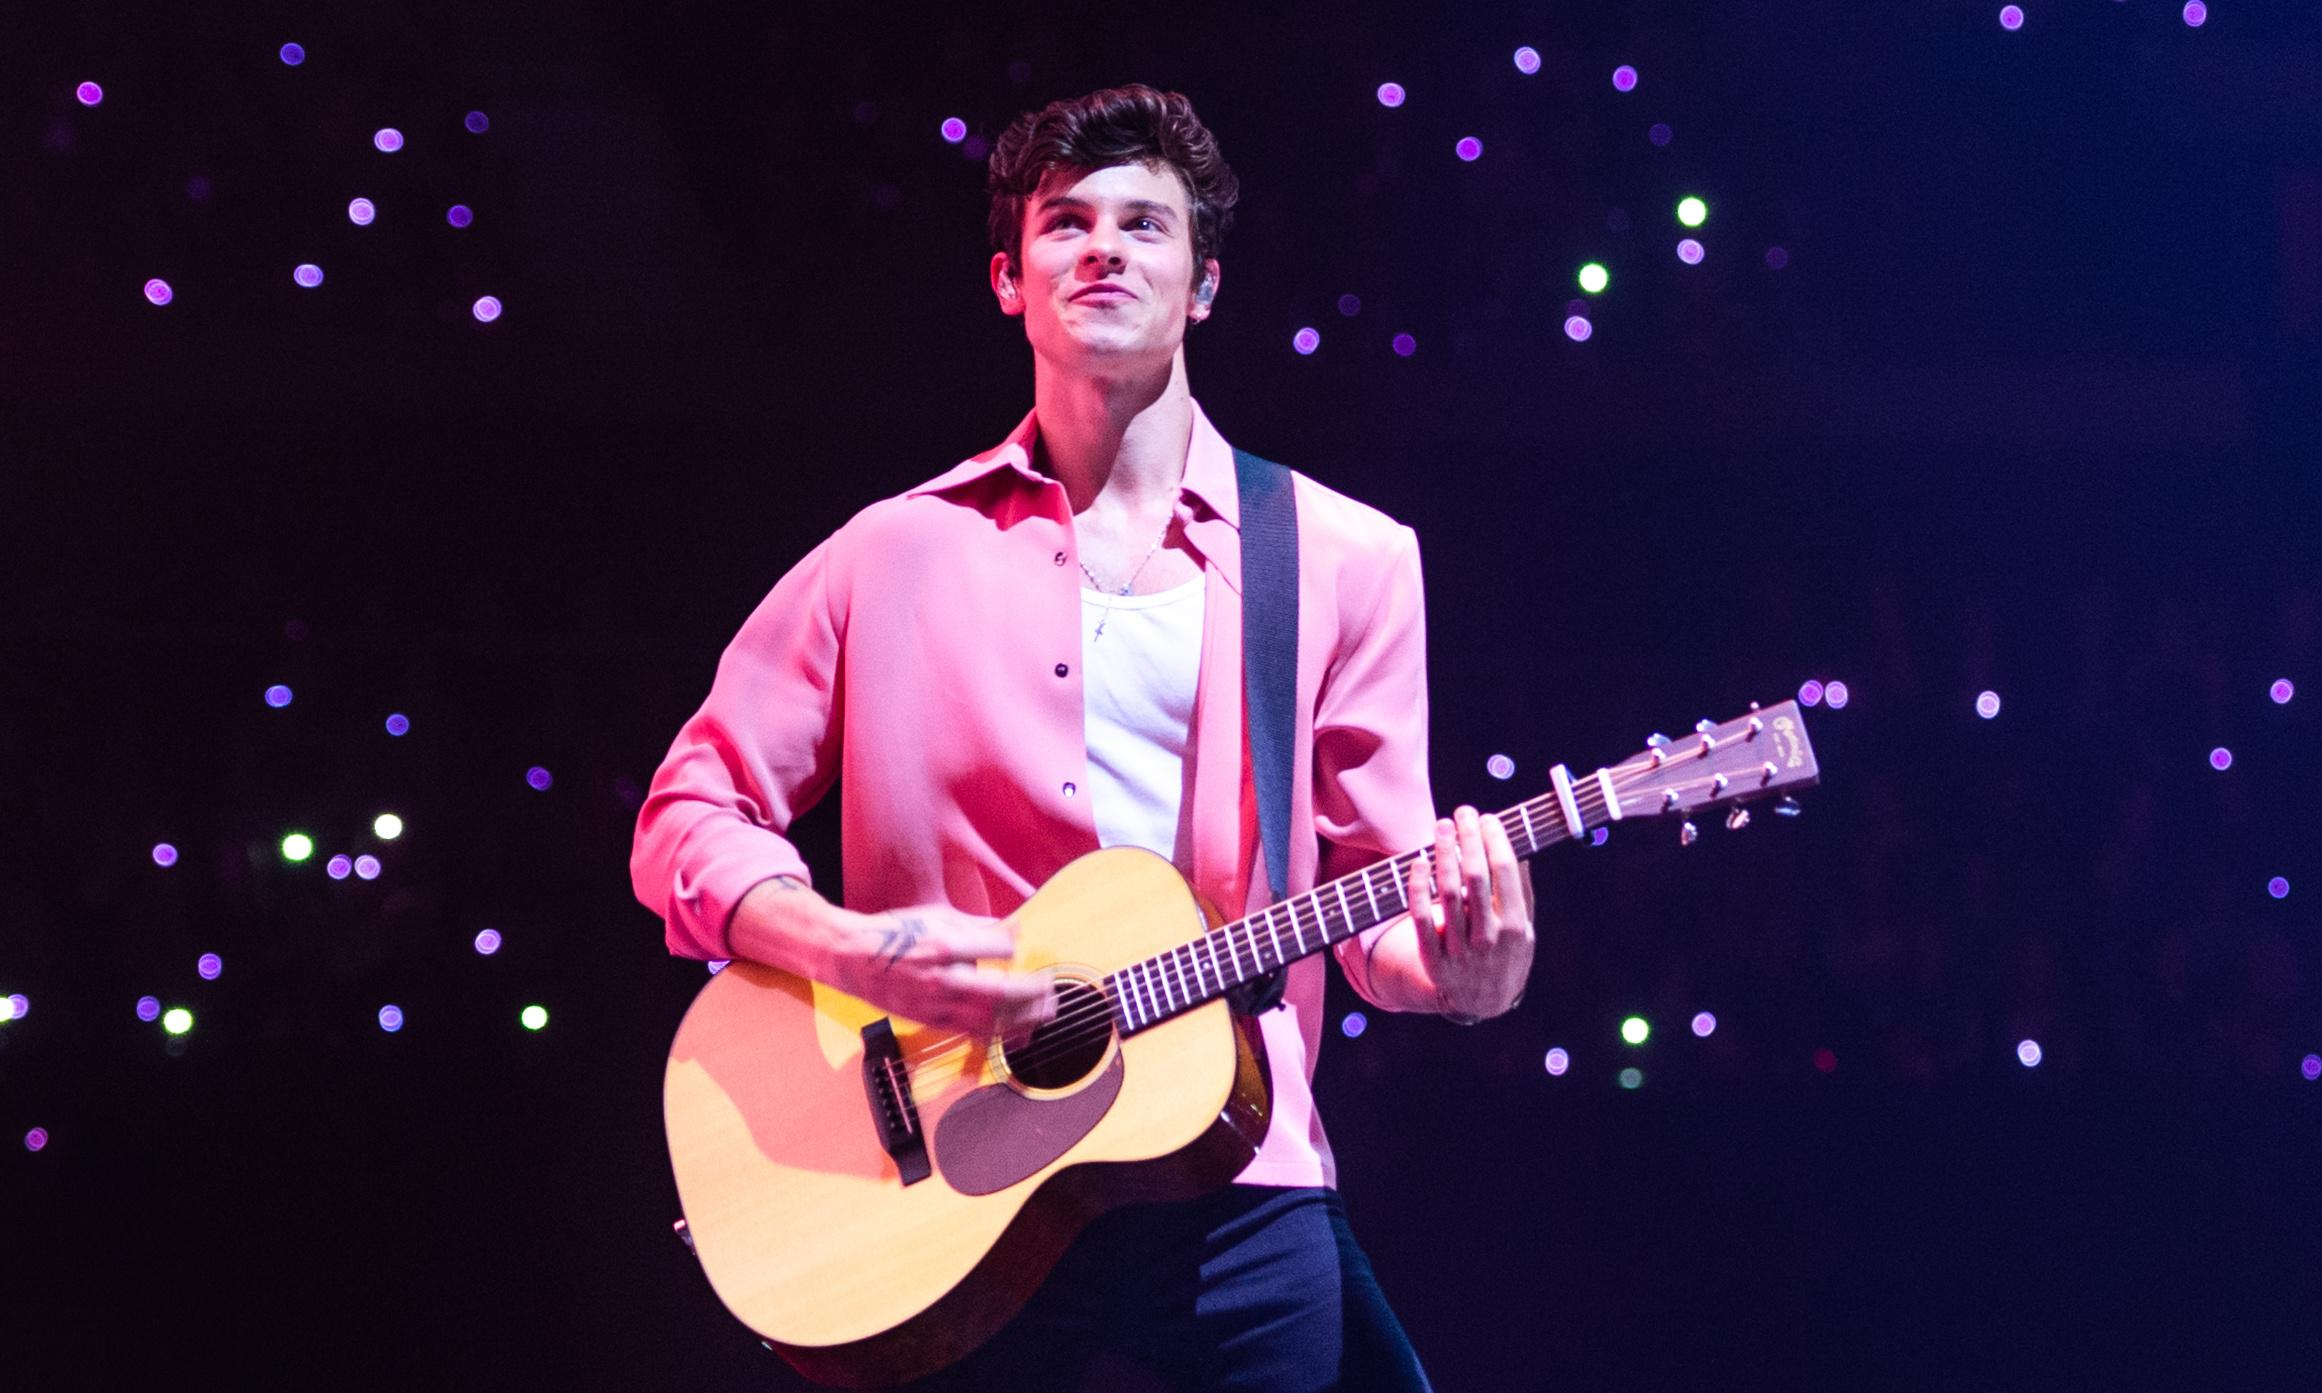 Shawn Mendes review – heartfelt songs from tousle-haired troubadour